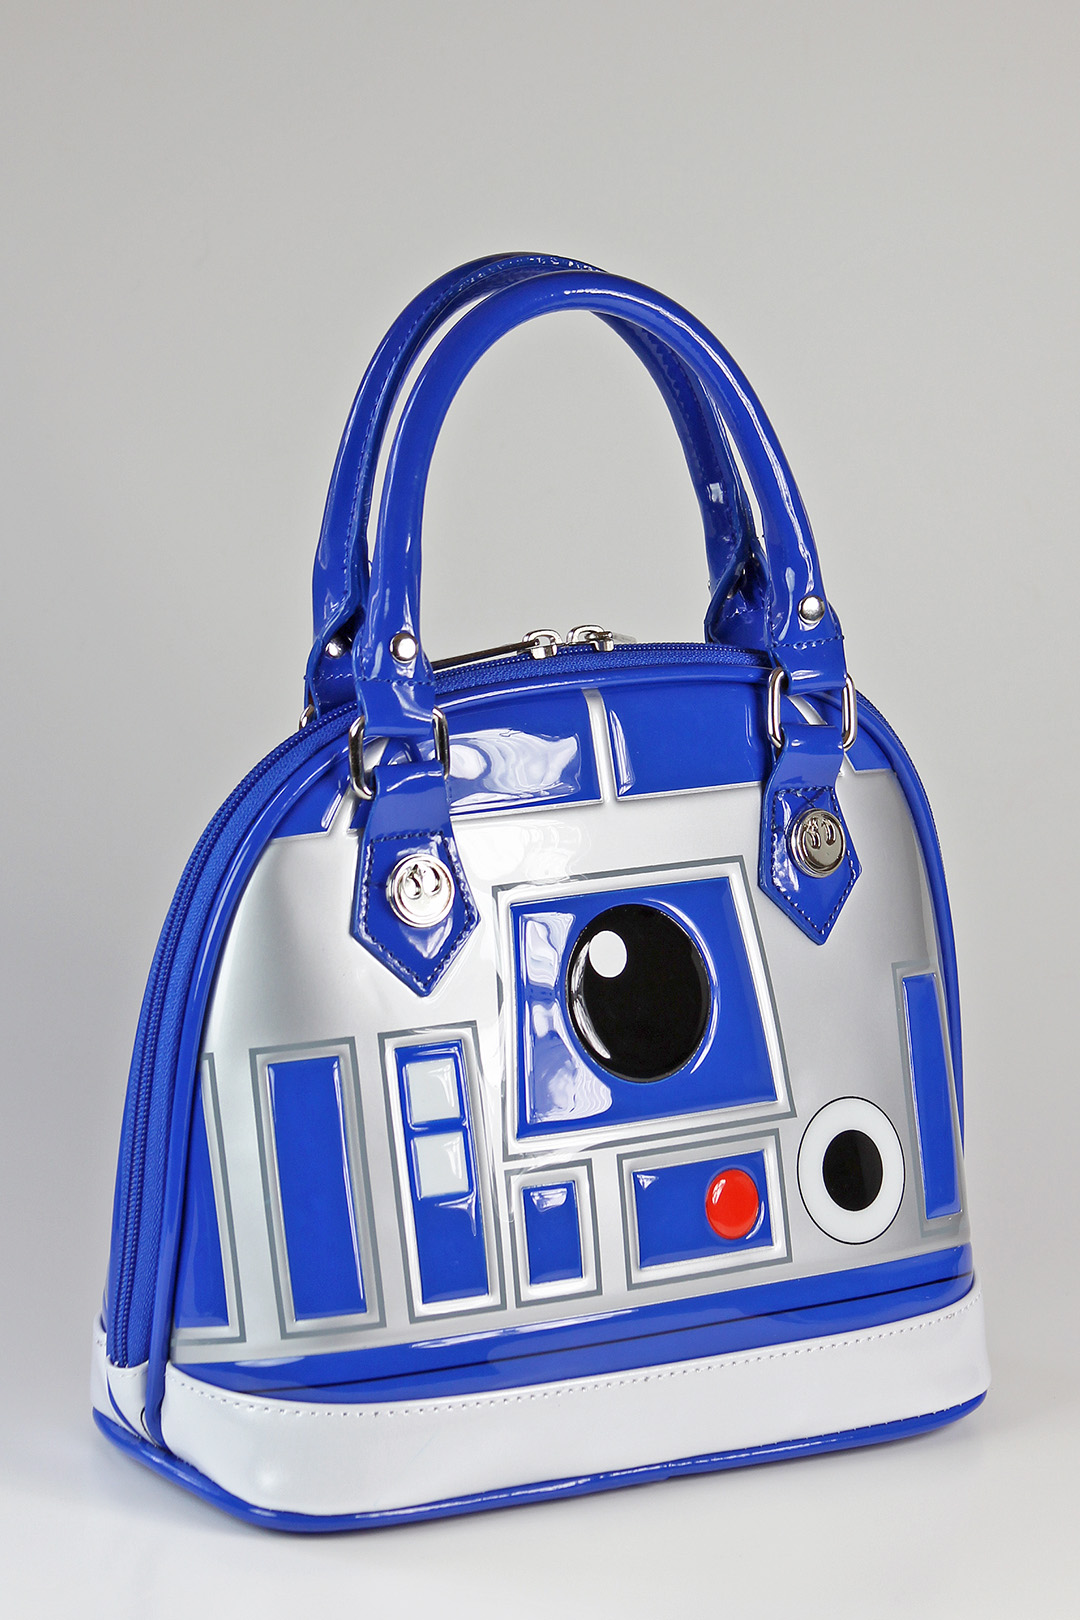 IMG_9210ms - R2-D2 flies! - Photos Unlimited